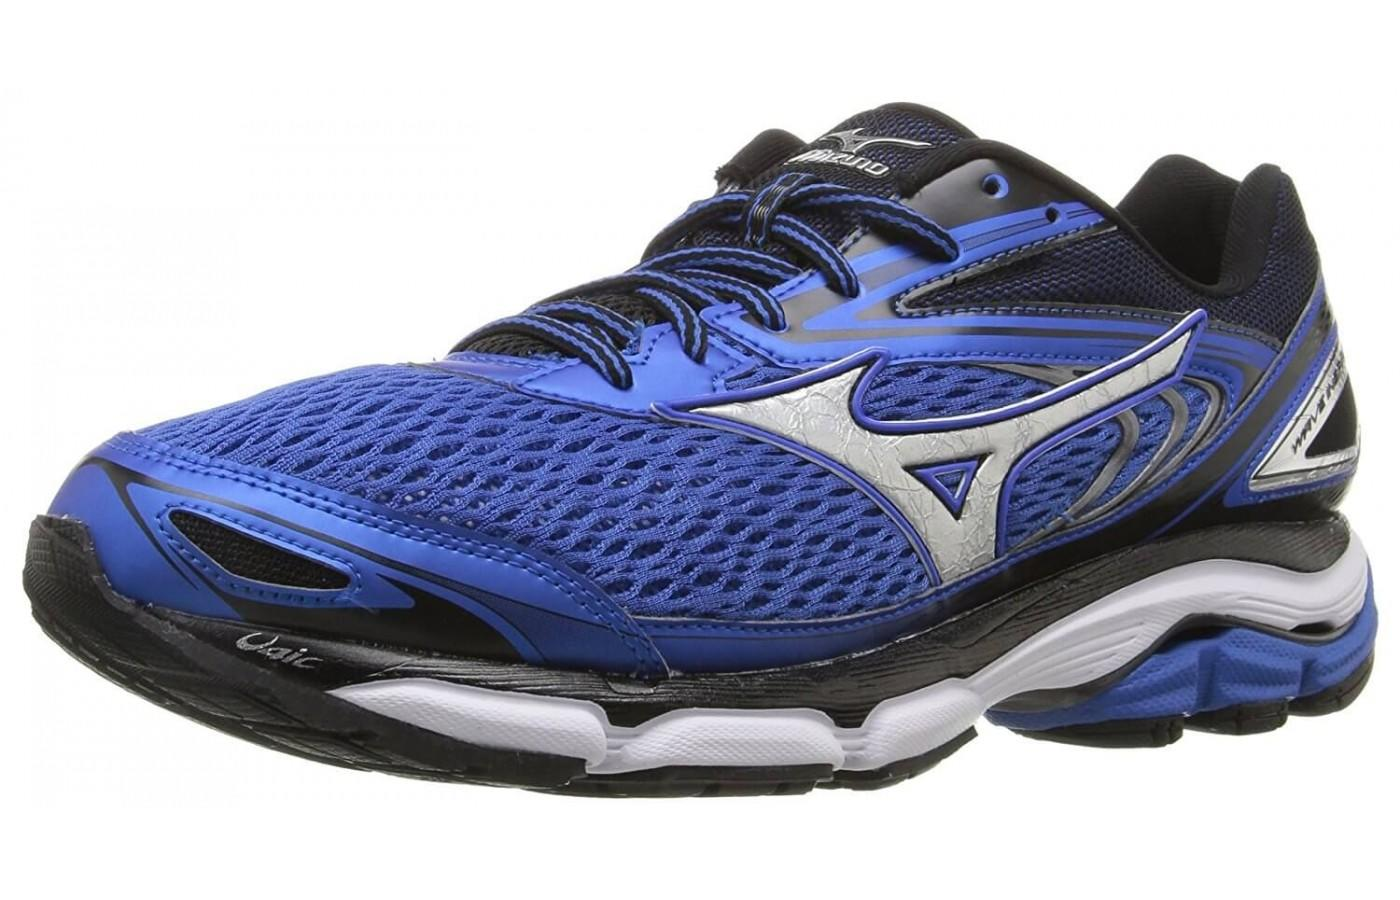 Mizuno Wave Inspire 13 in men's blue